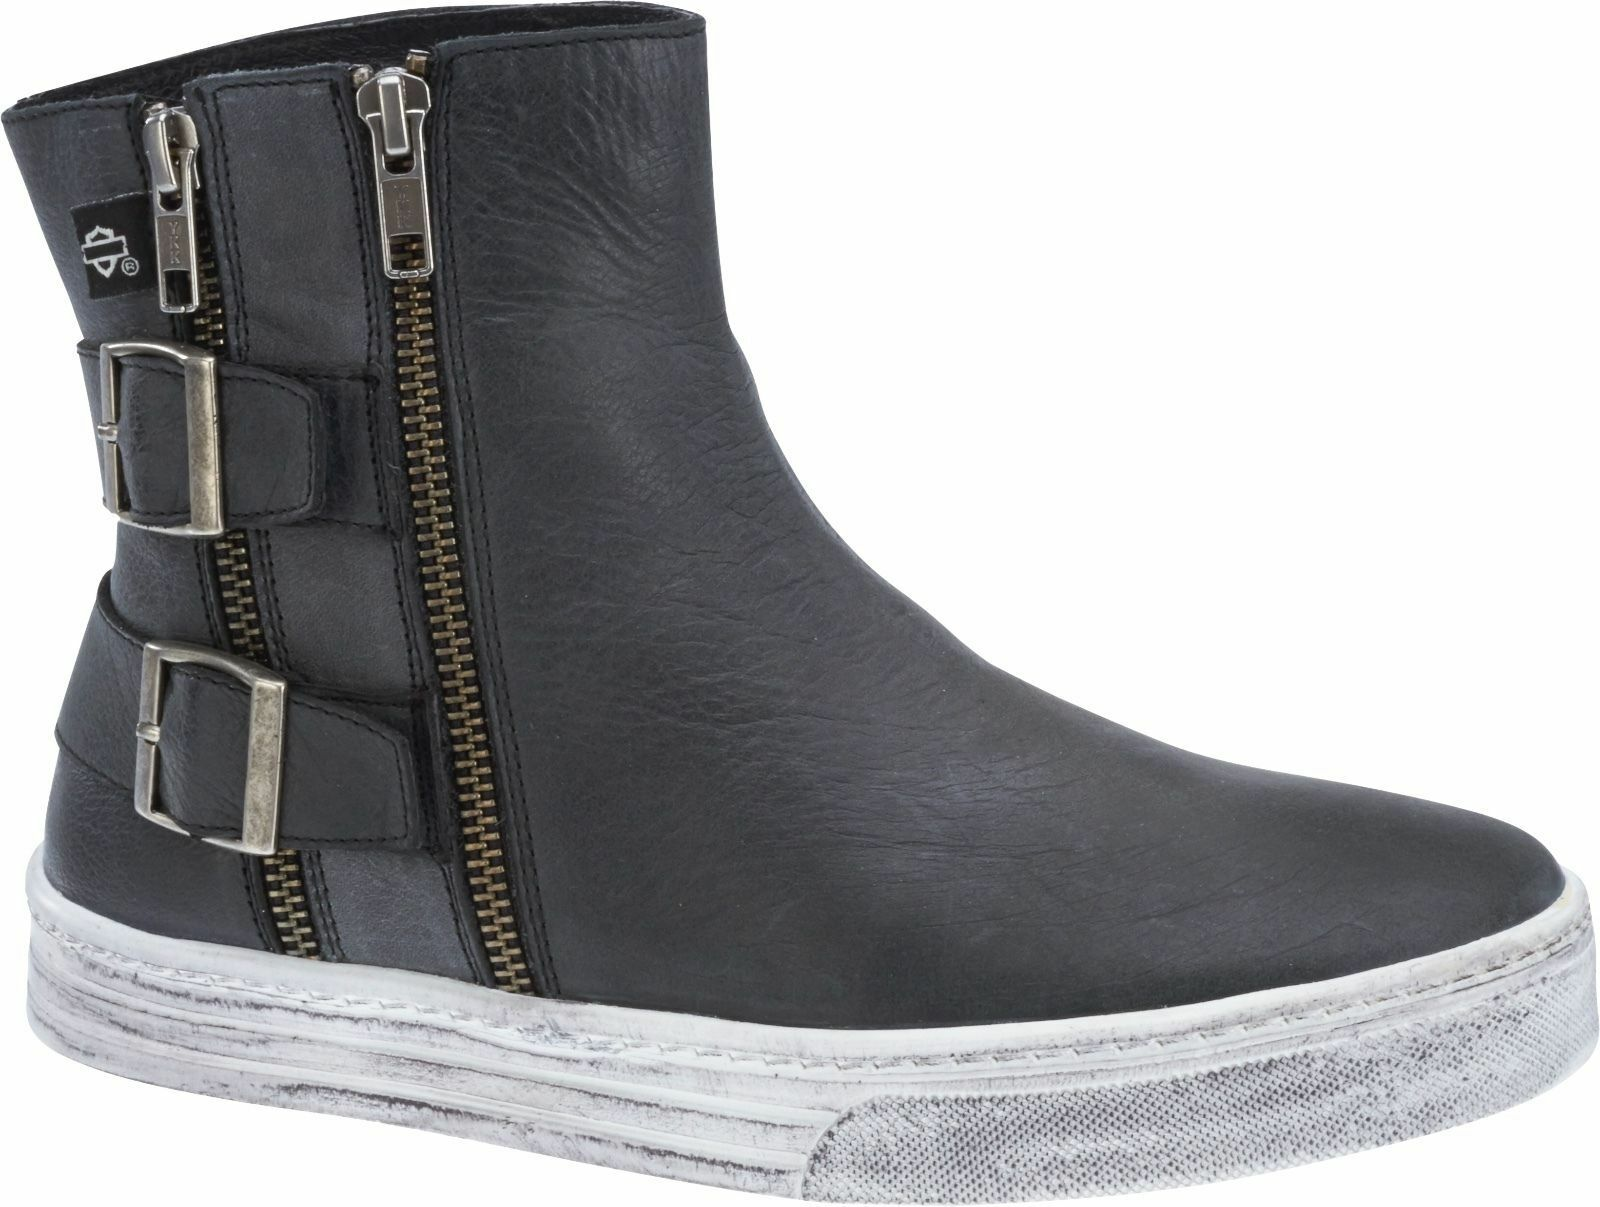 Harley-Davidson Women's Casual Boots Shoes Sneakers Gray Leather Inkwood D88805